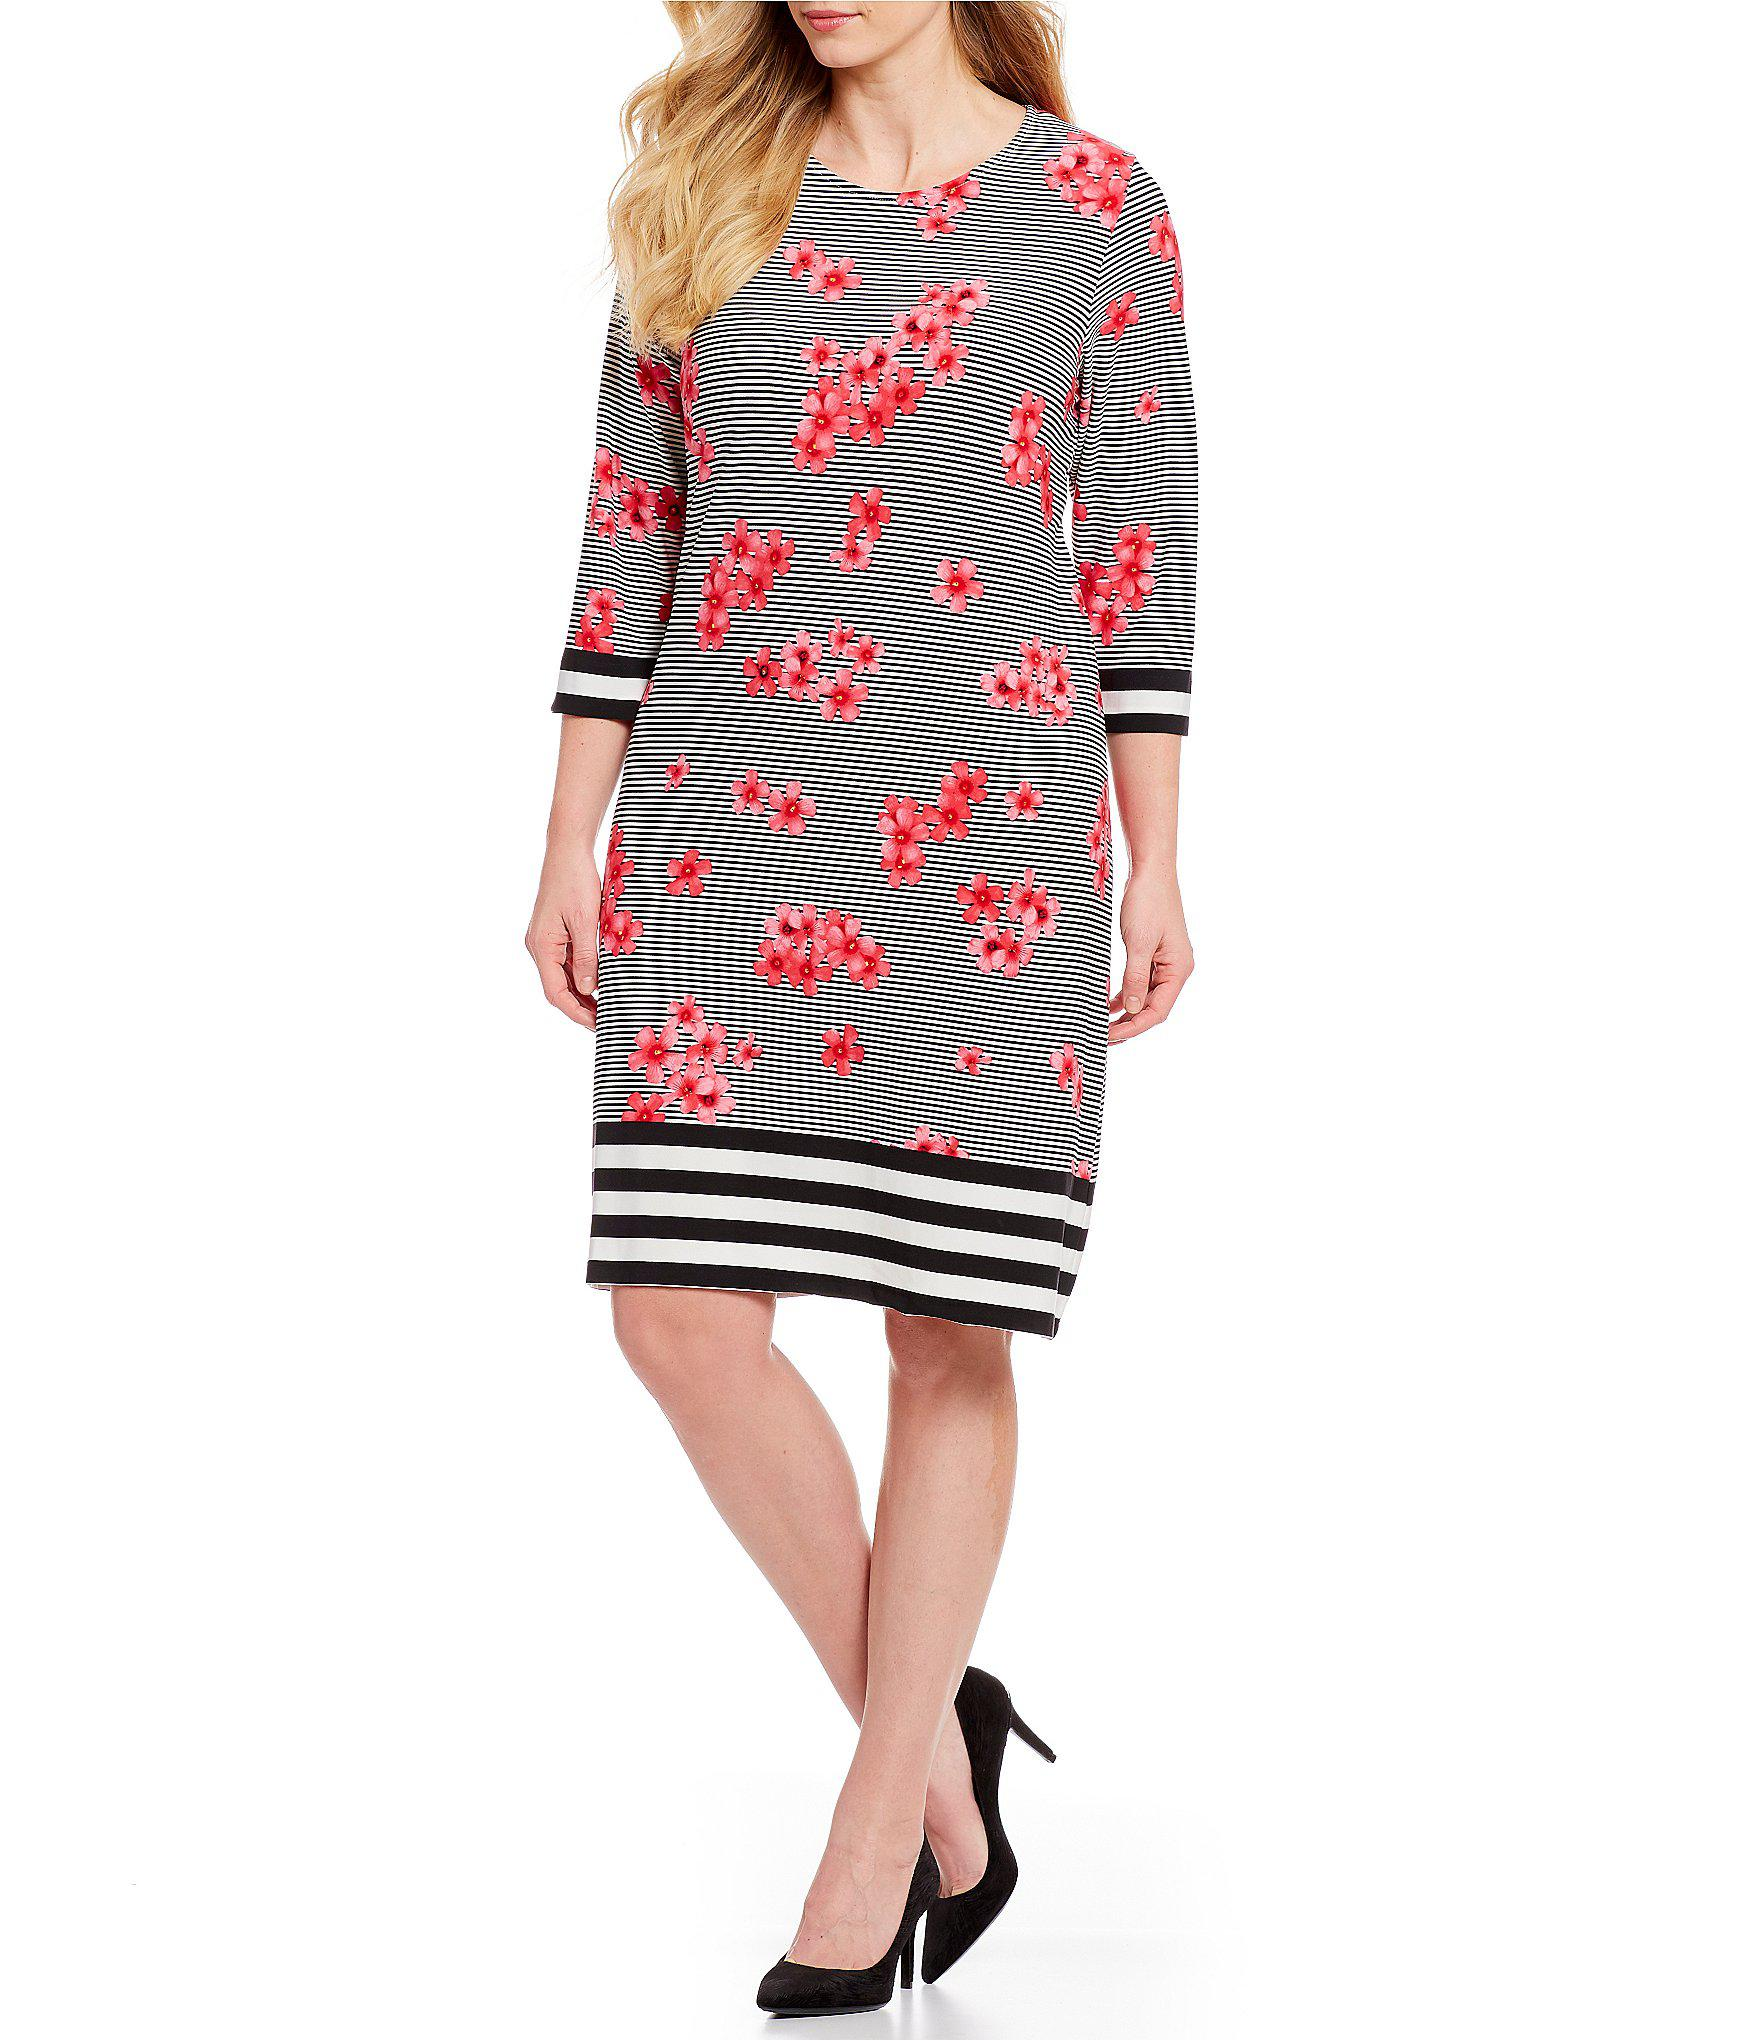 759457efddd Calvin Klein. Women s Plus Size Stripe Floral Print Sheath Dress